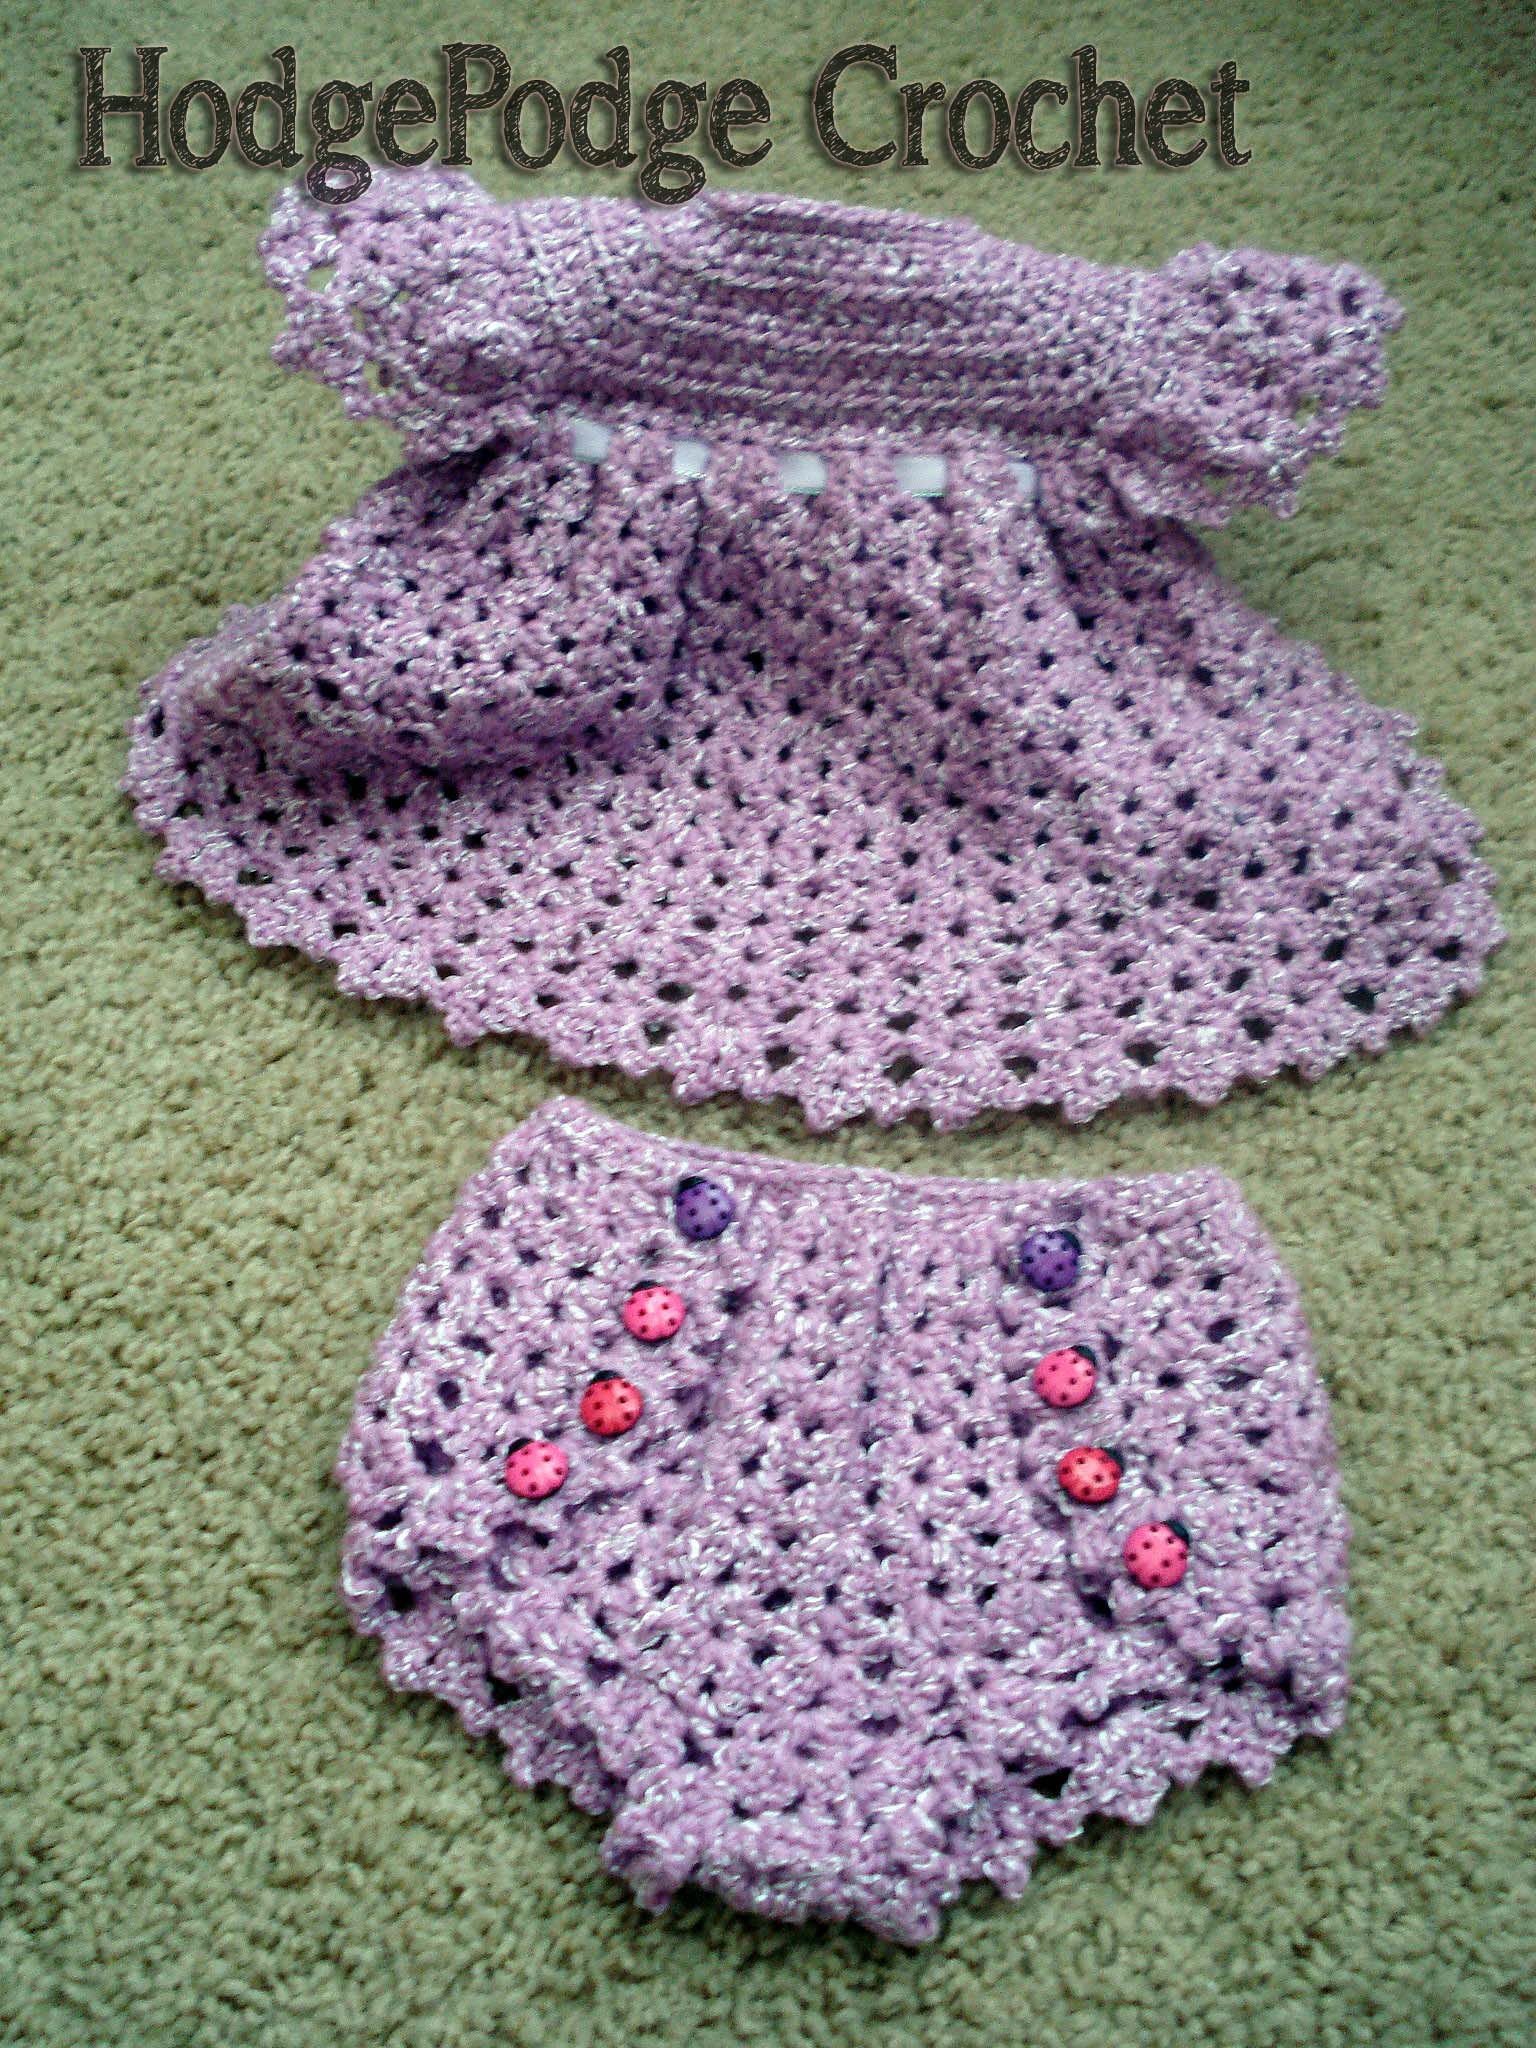 Crochet Patterns Diaper Covers : https://hodgepodgecrochet.wordpress.com Vintage Dress and Diaper Cover